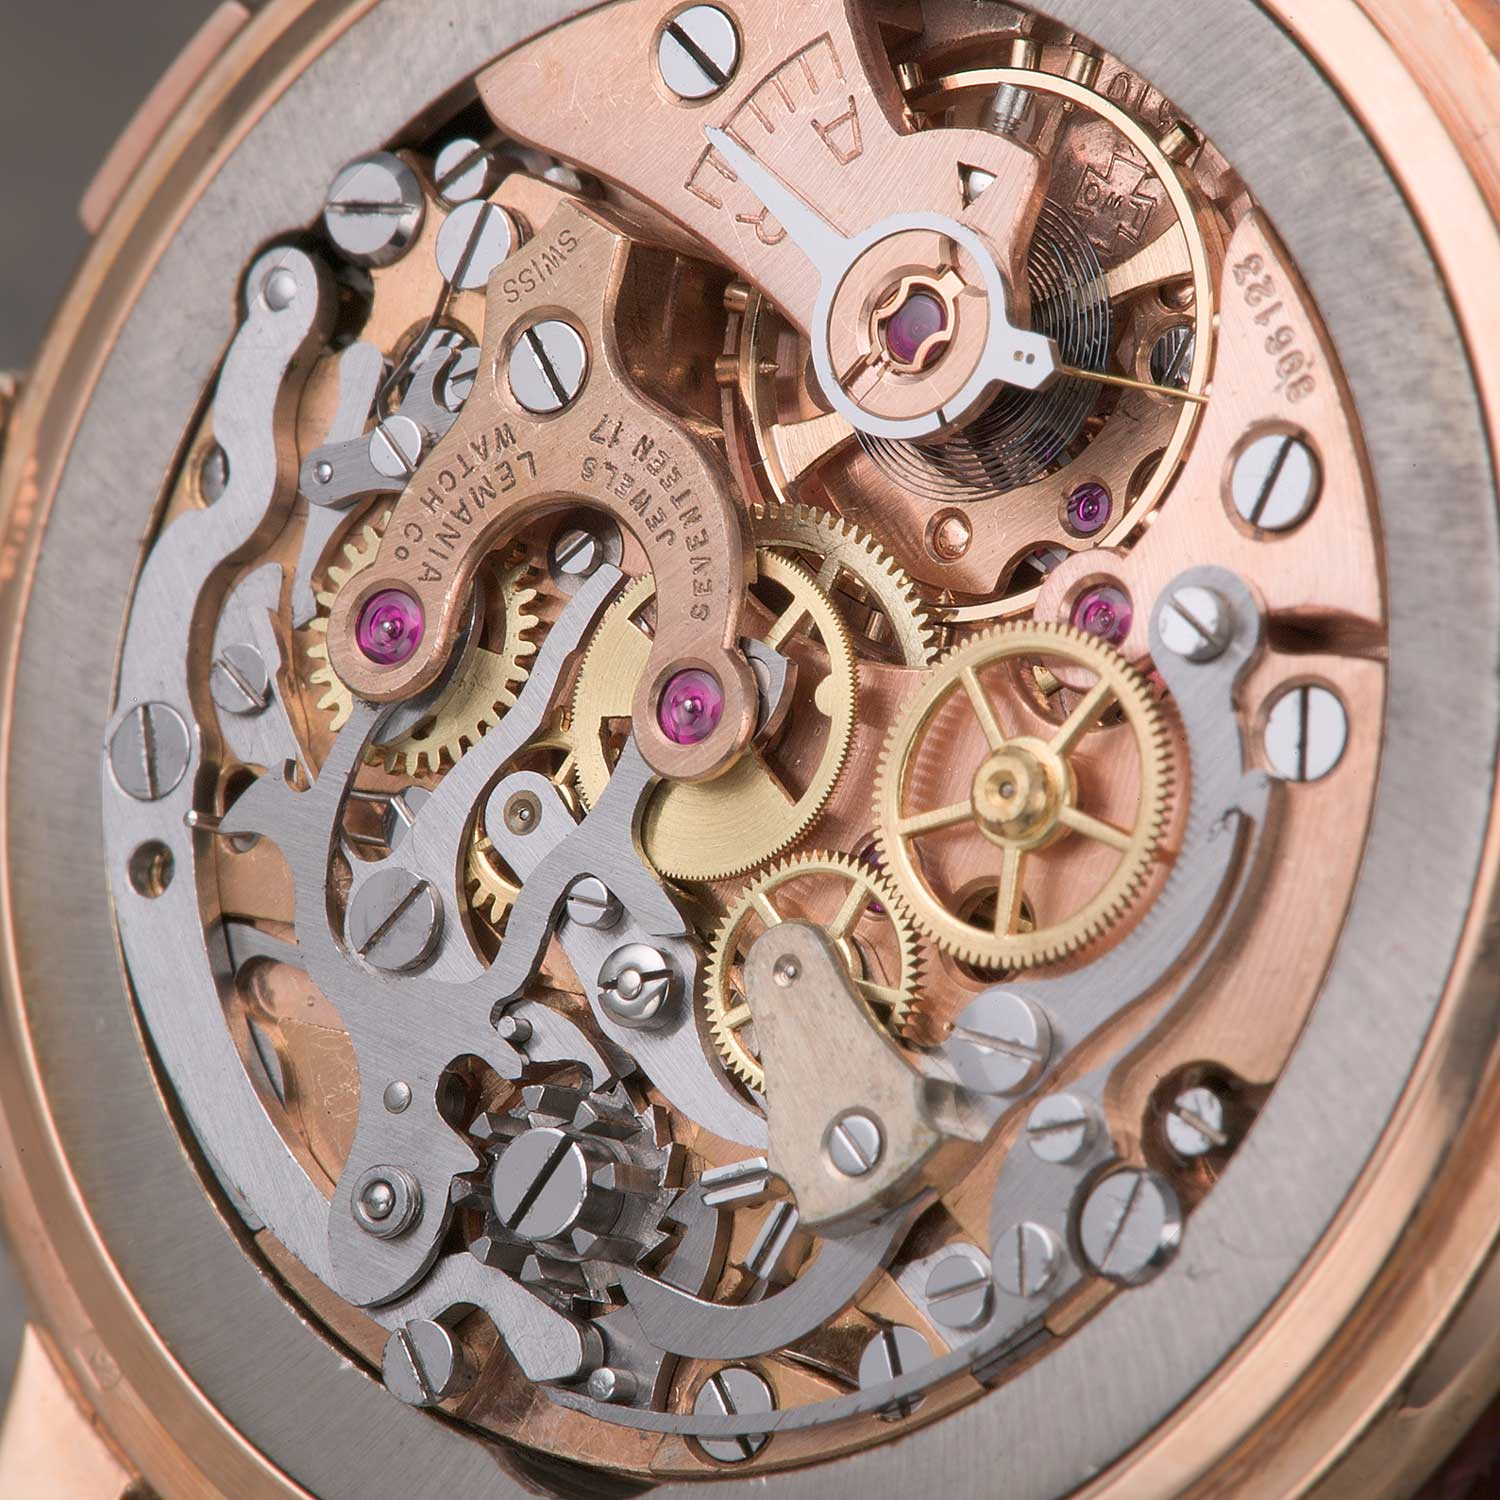 The Lemania 2310 is immediately recognizable with its durable and adaptable architecture; the movement uses a column wheel control system; levers and springs were cut and shaped from a thick steel sheet; bridges here are plated with pink gold; finishing on the movement is highly functional (Image: ninanet.net; SteveG's Watch Launchpad)